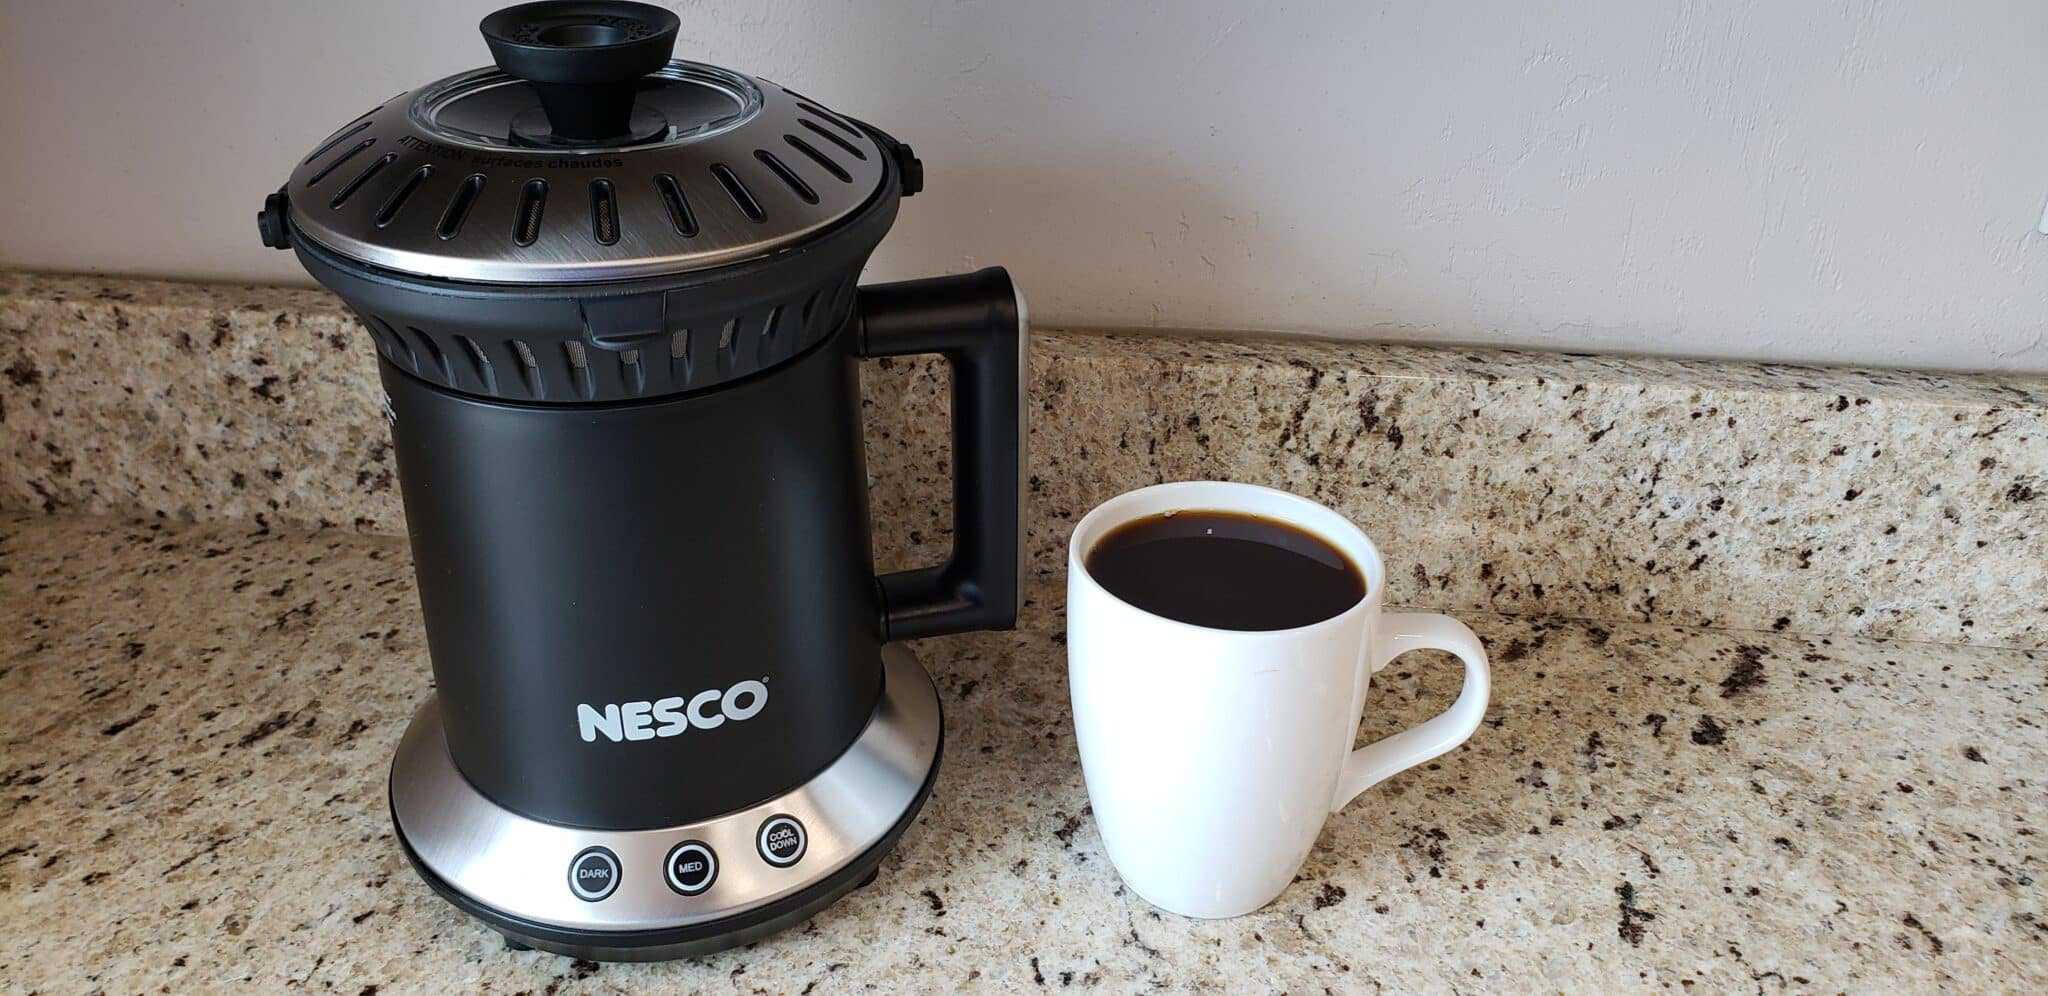 Perk Up Your Morning Brew With A NESCO Coffee Roaster